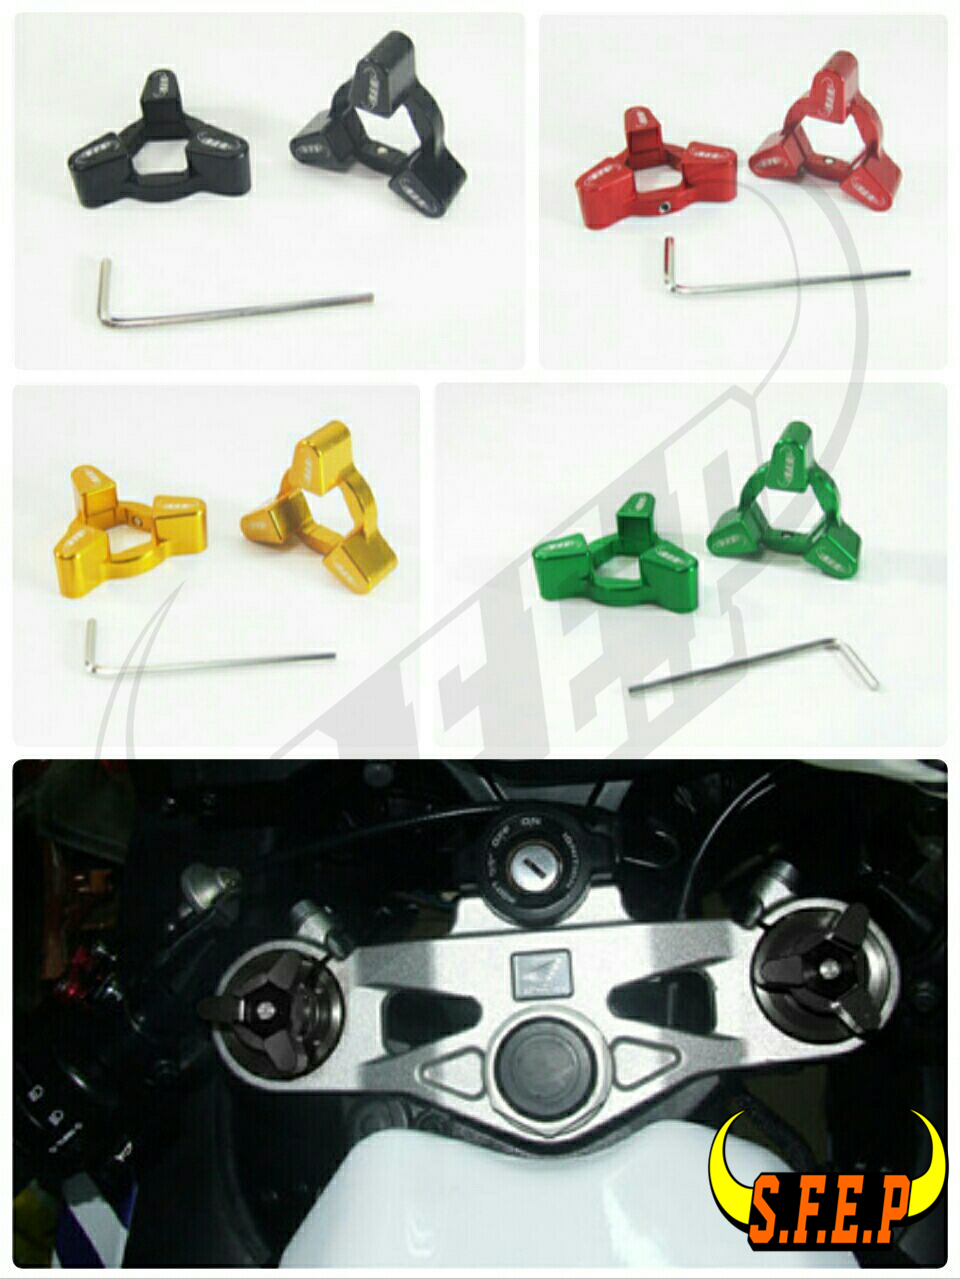 Motorcycle CNC Fork Preload Adjusters For Kawasaki ZX6R / ZX636R / ZX6RR 98-02/ ZX9R 98-03/ ZX12R 00-05